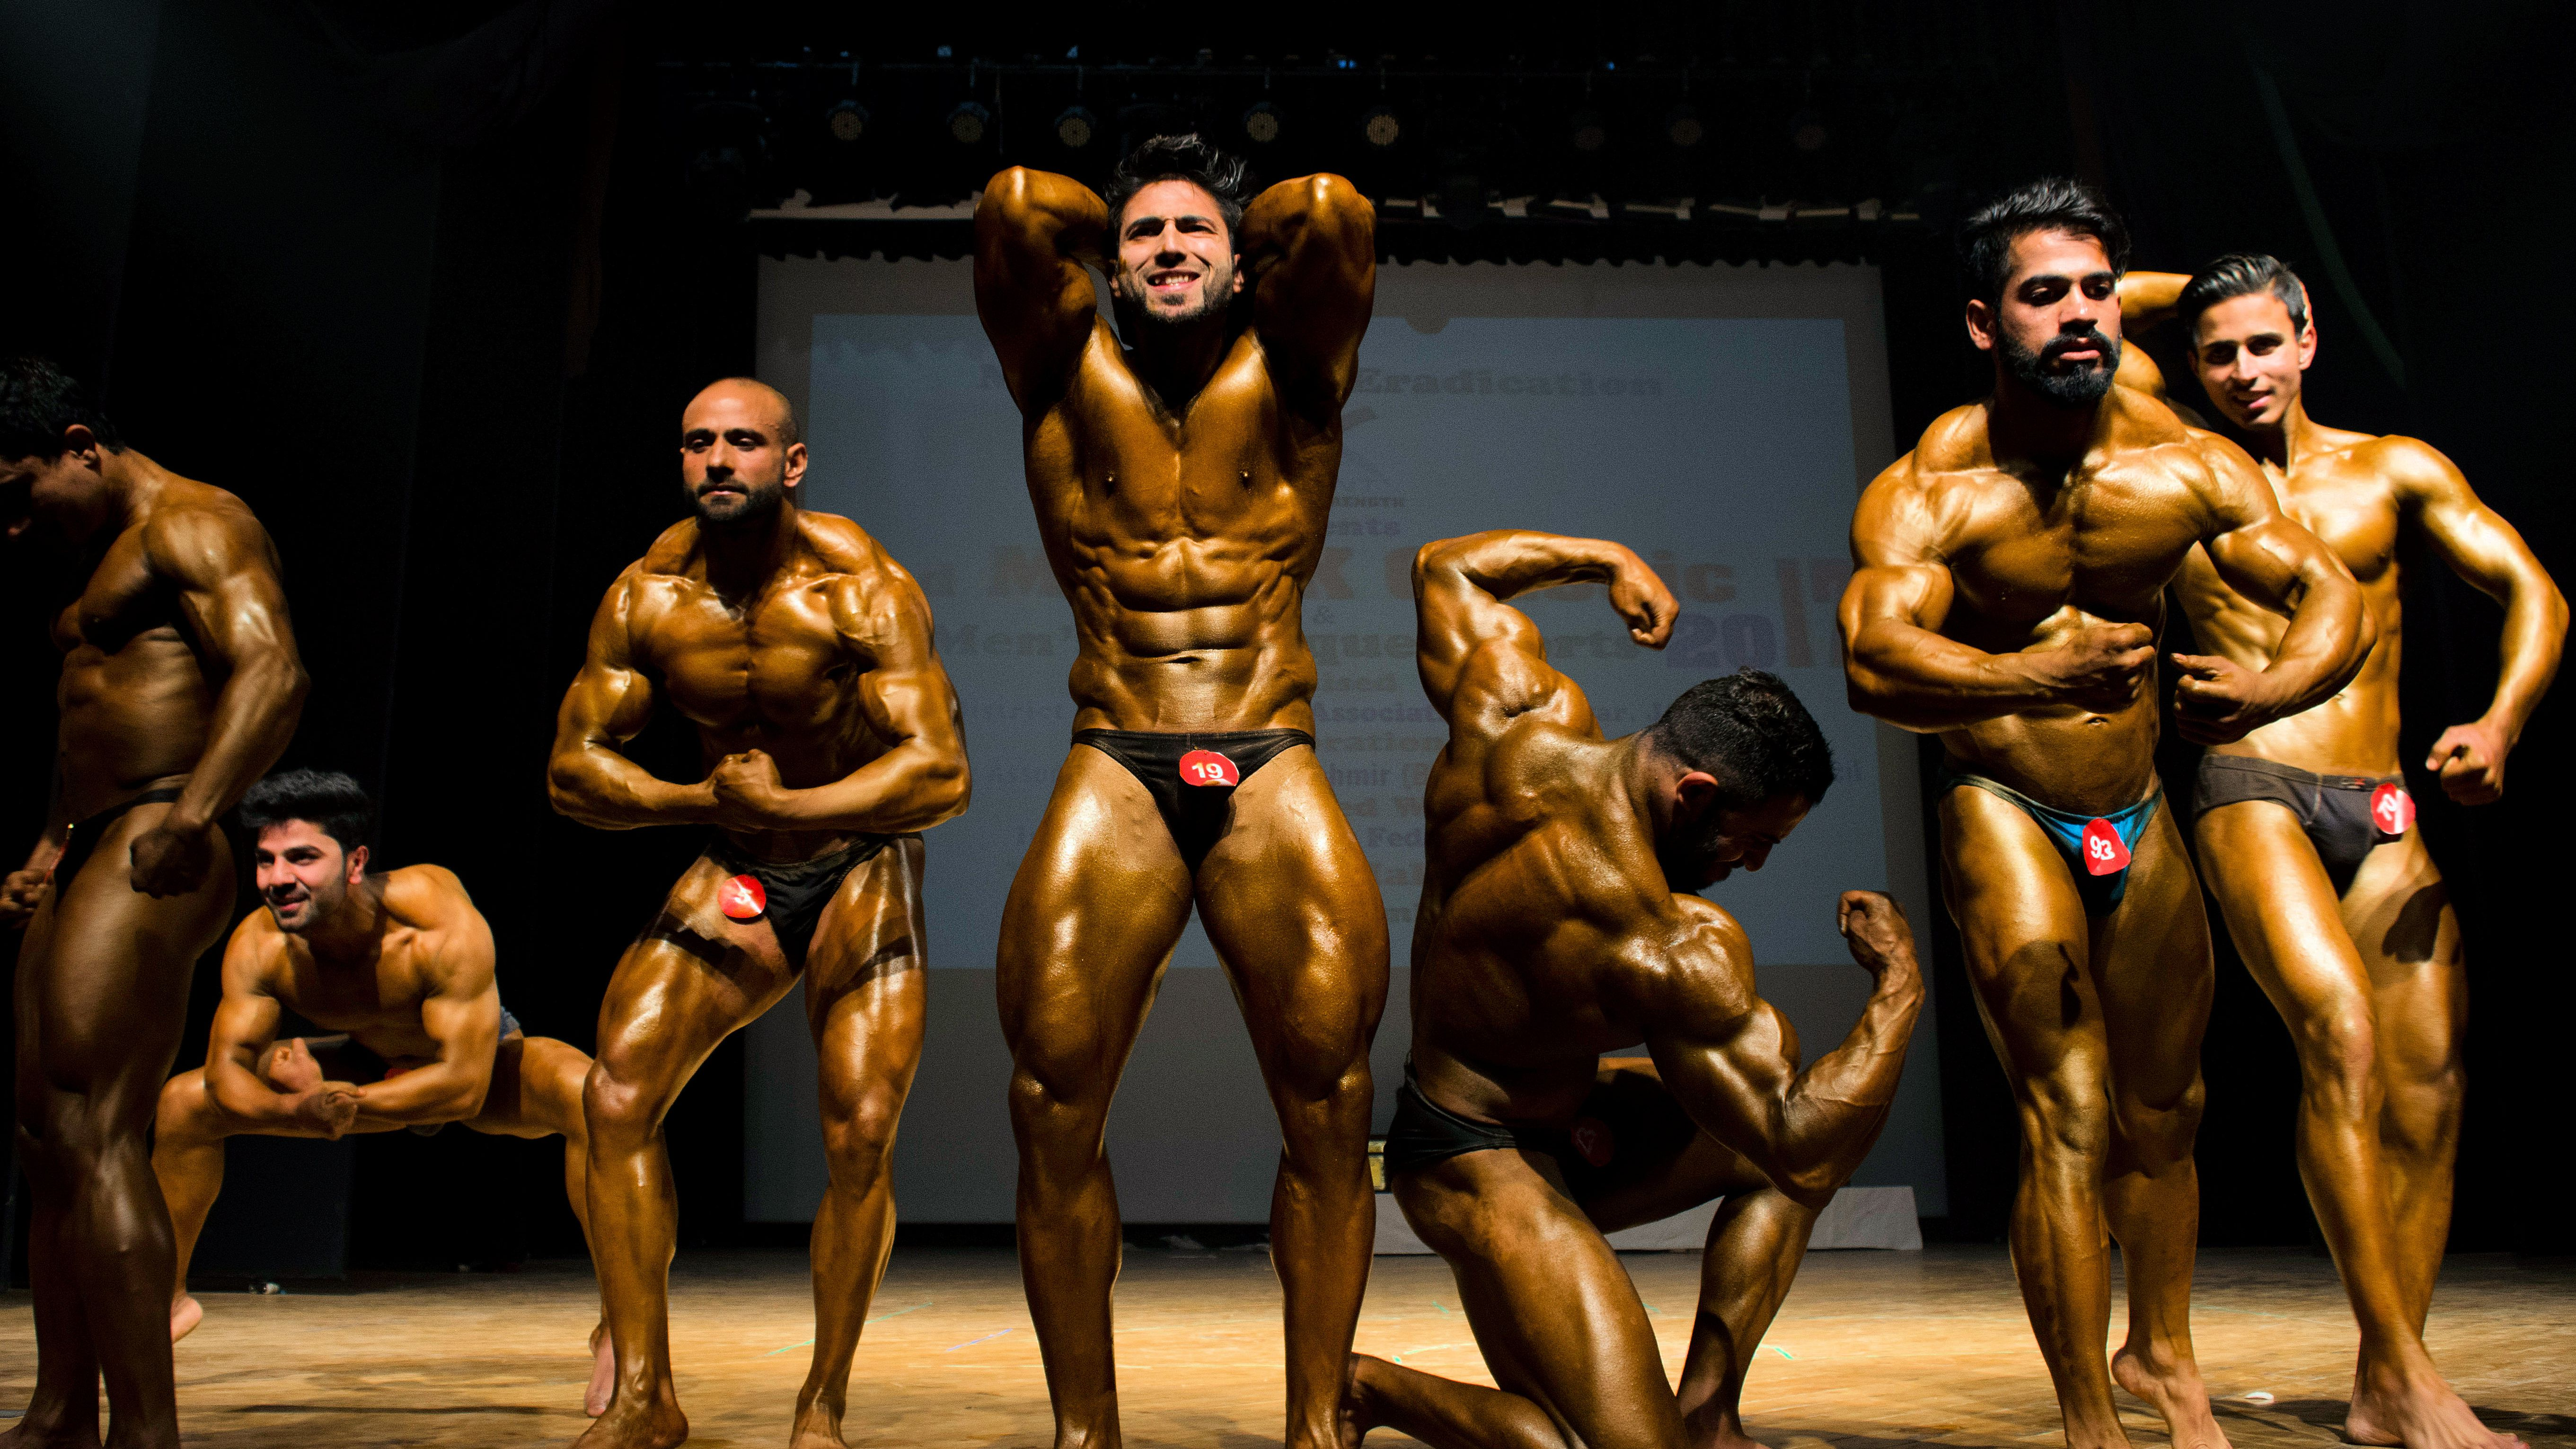 The Eight Mandatory Poses in Bodybuilding